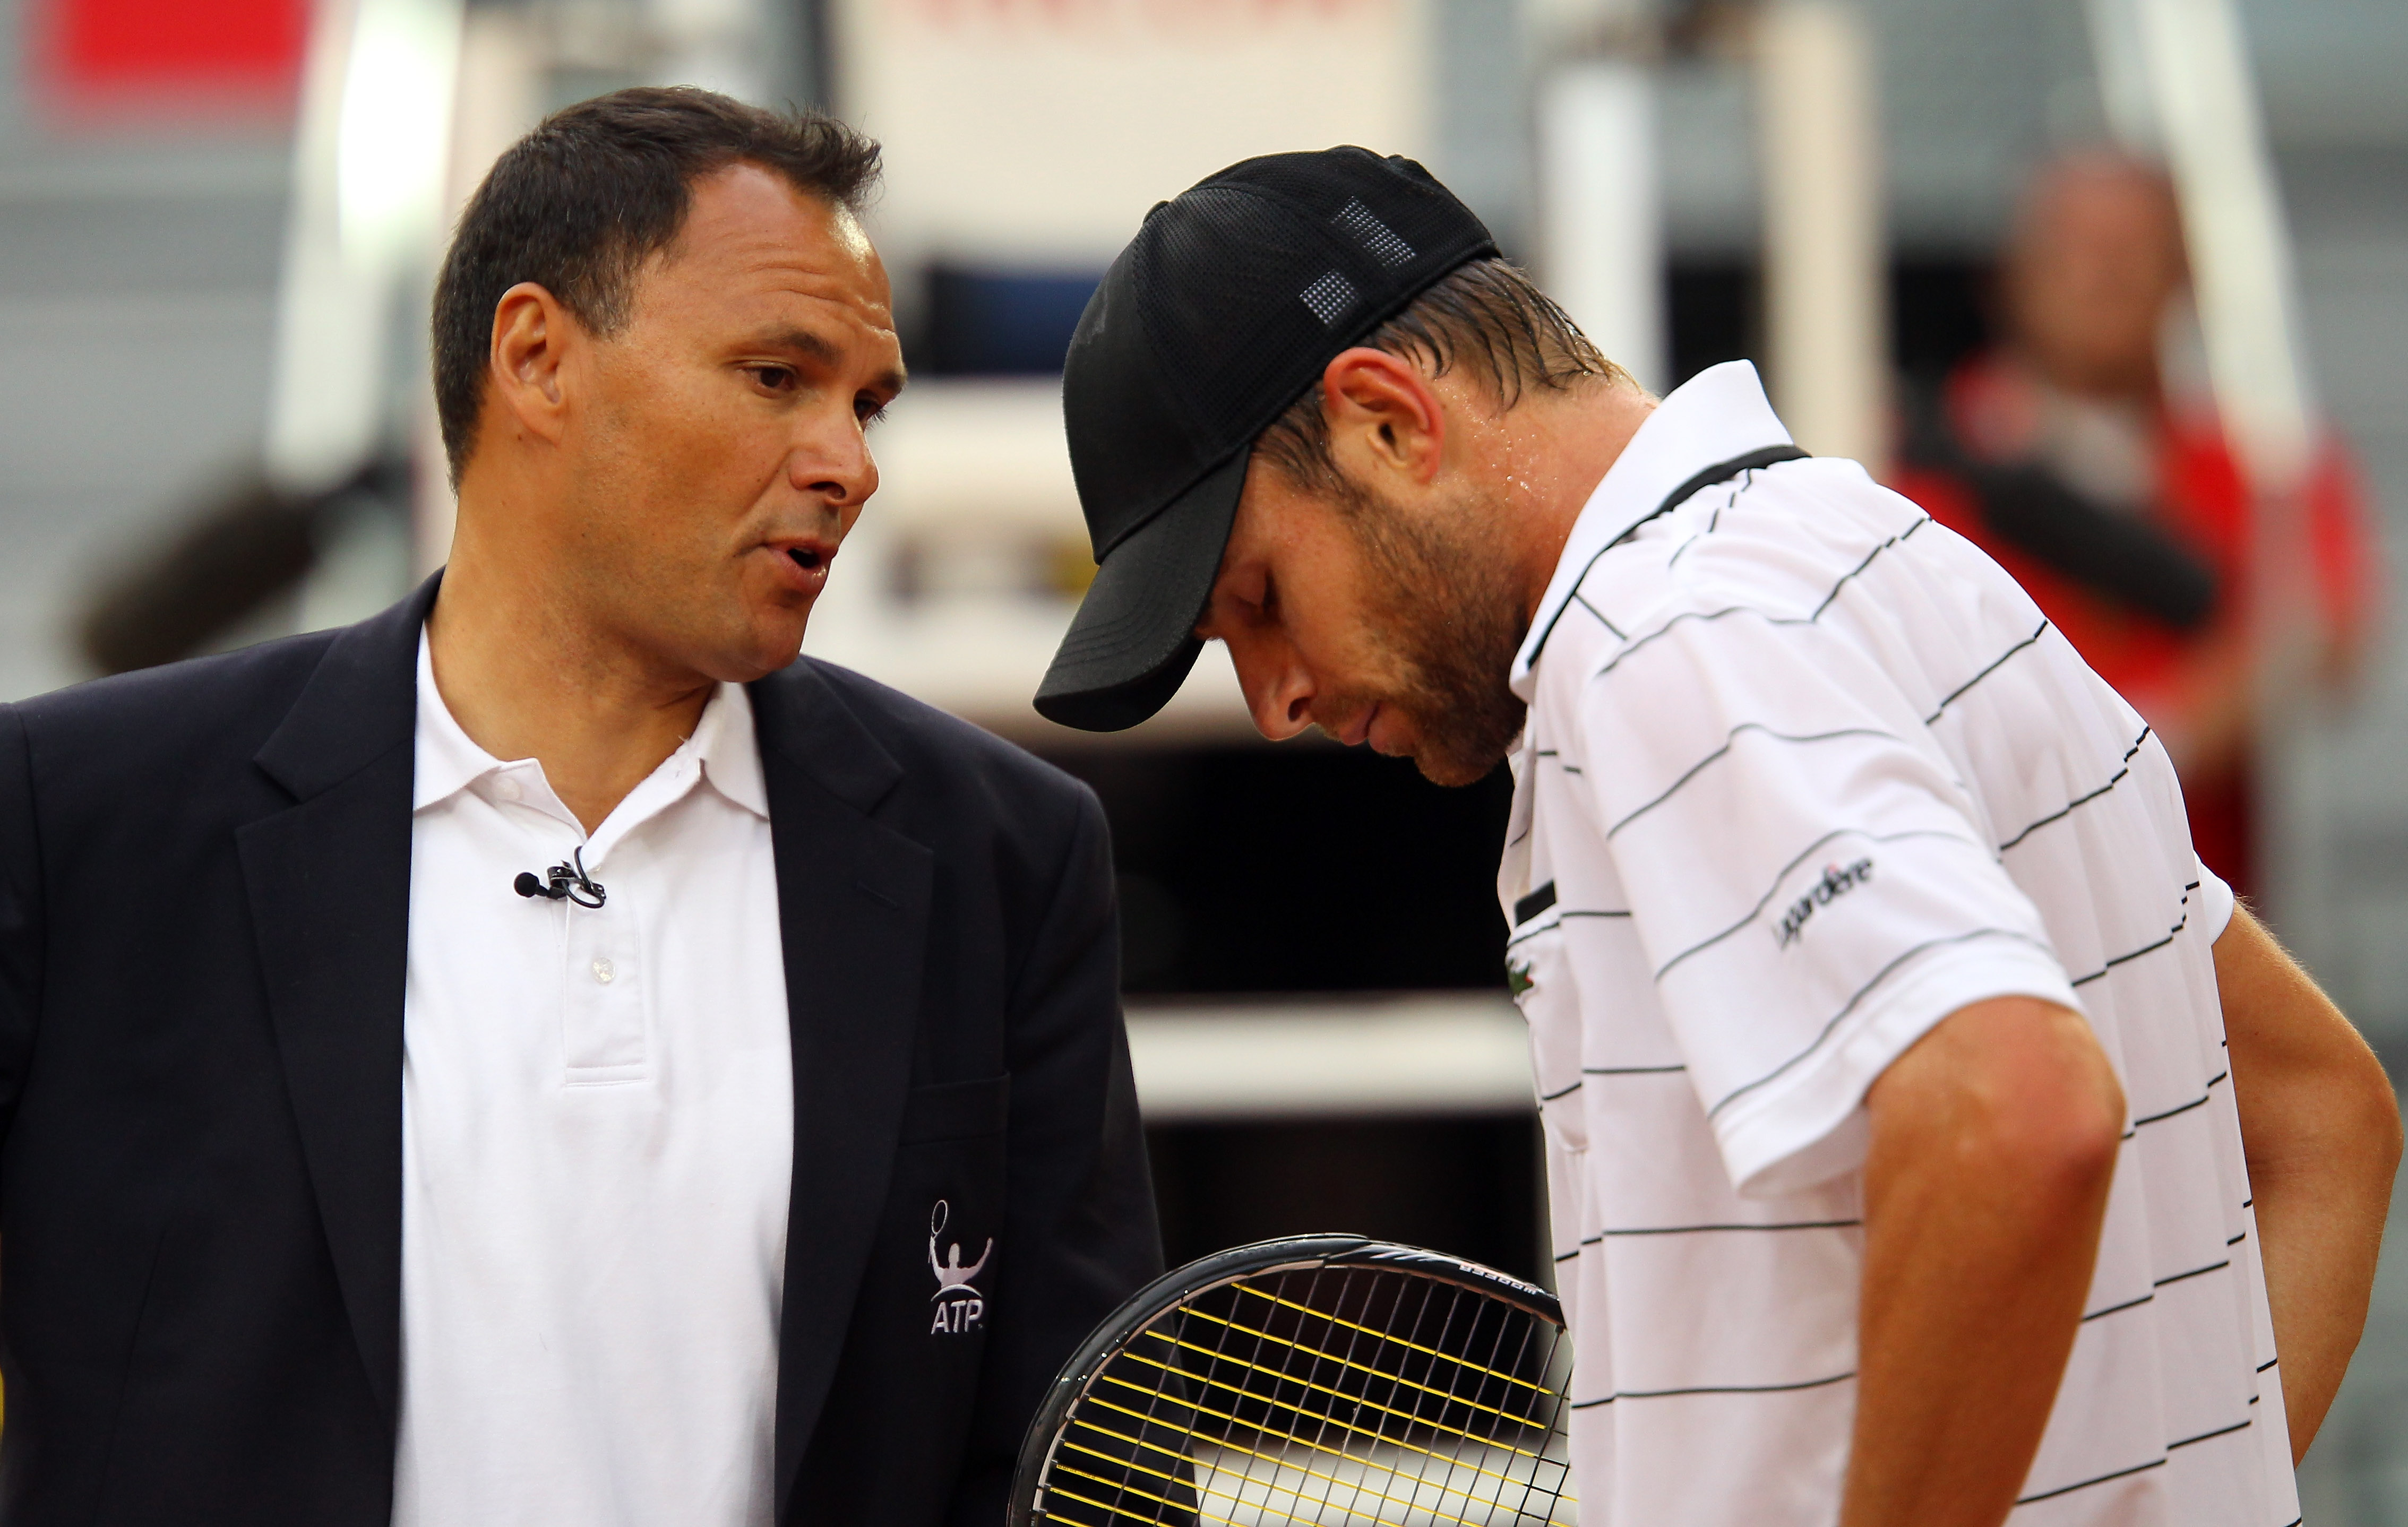 MADRID, SPAIN - MAY 02:  Andy Roddick of USA disscusses a line call with umpire Mohamed Lahyani in his match against Flavio Cipolla of Italy during day three of the Mutua Madrilena Madrid Open Tennis on May 2, 2011 in Madrid, Spain.  (Photo by Julian Finn